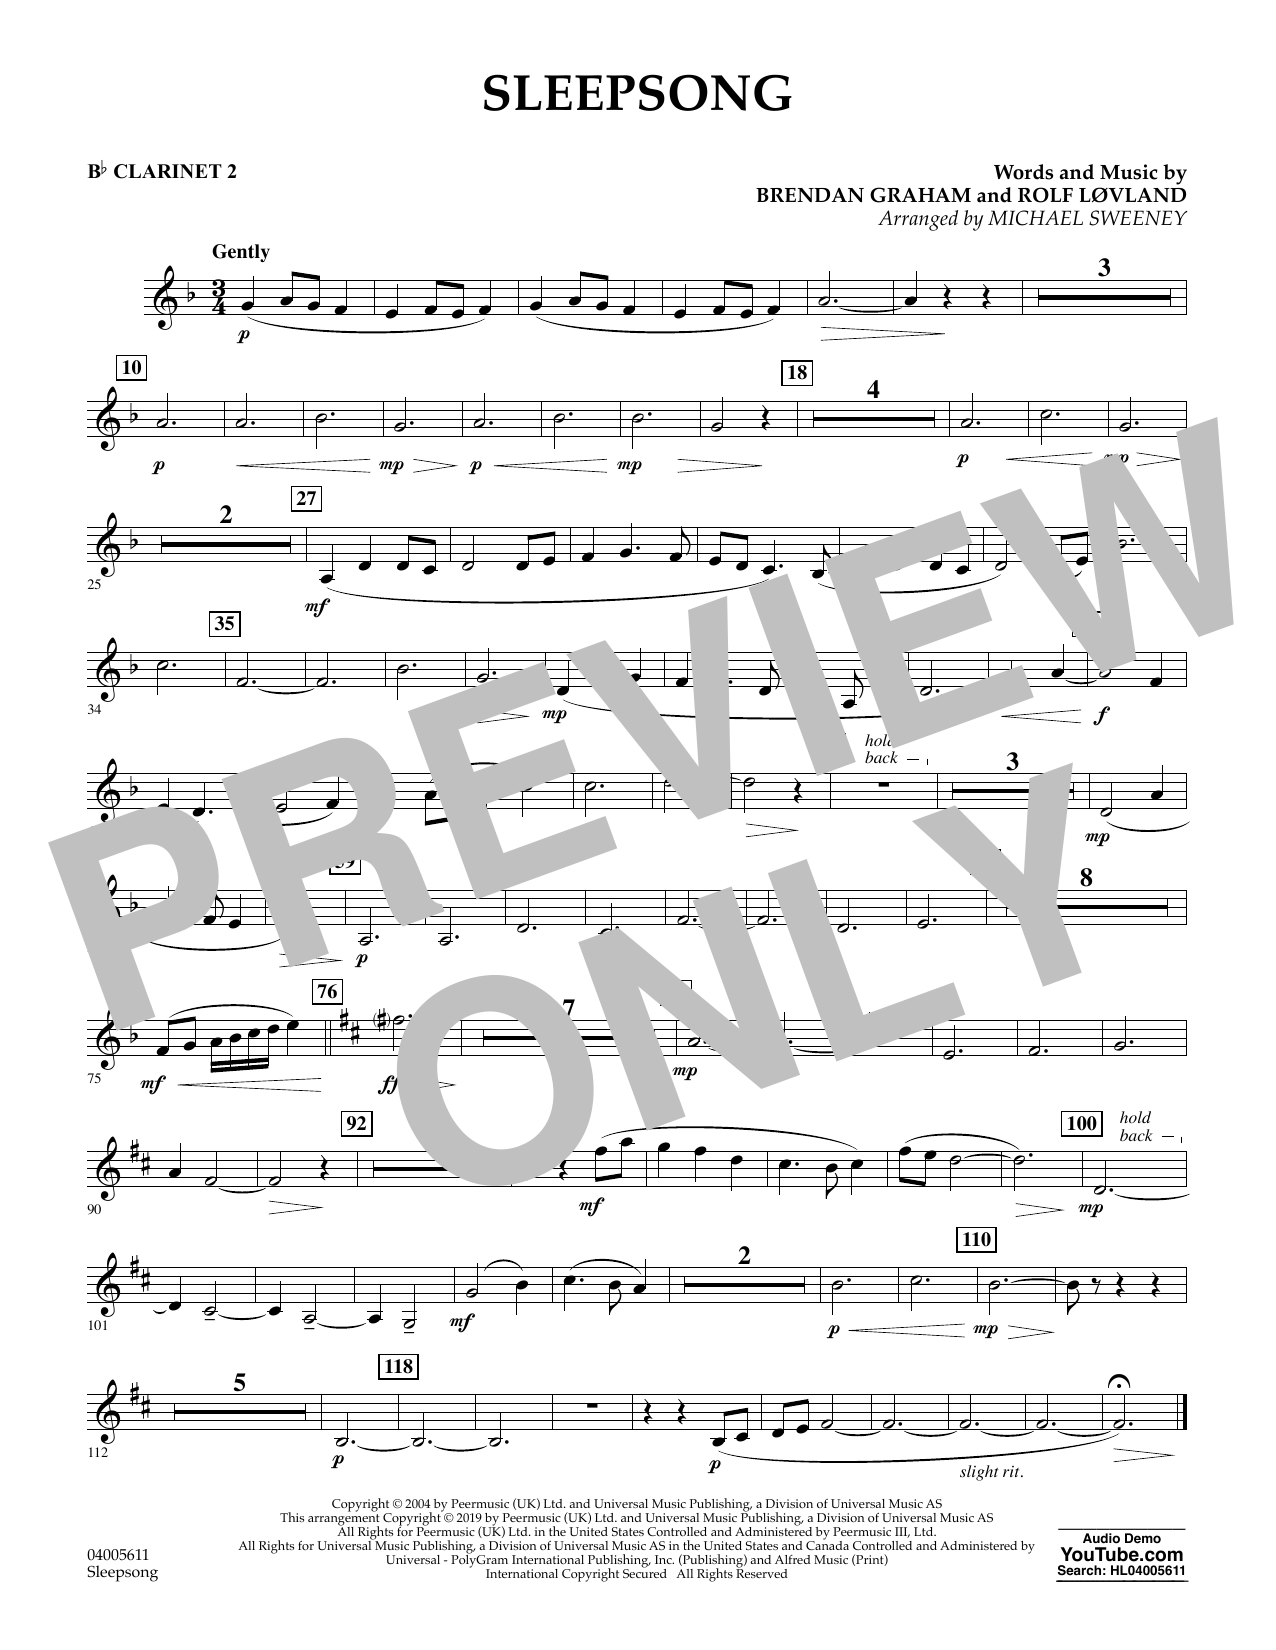 Secret Garden Sleepsong (arr. Michael Sweeney) - Bb Clarinet 2 sheet music preview music notes and score for Concert Band including 1 page(s)